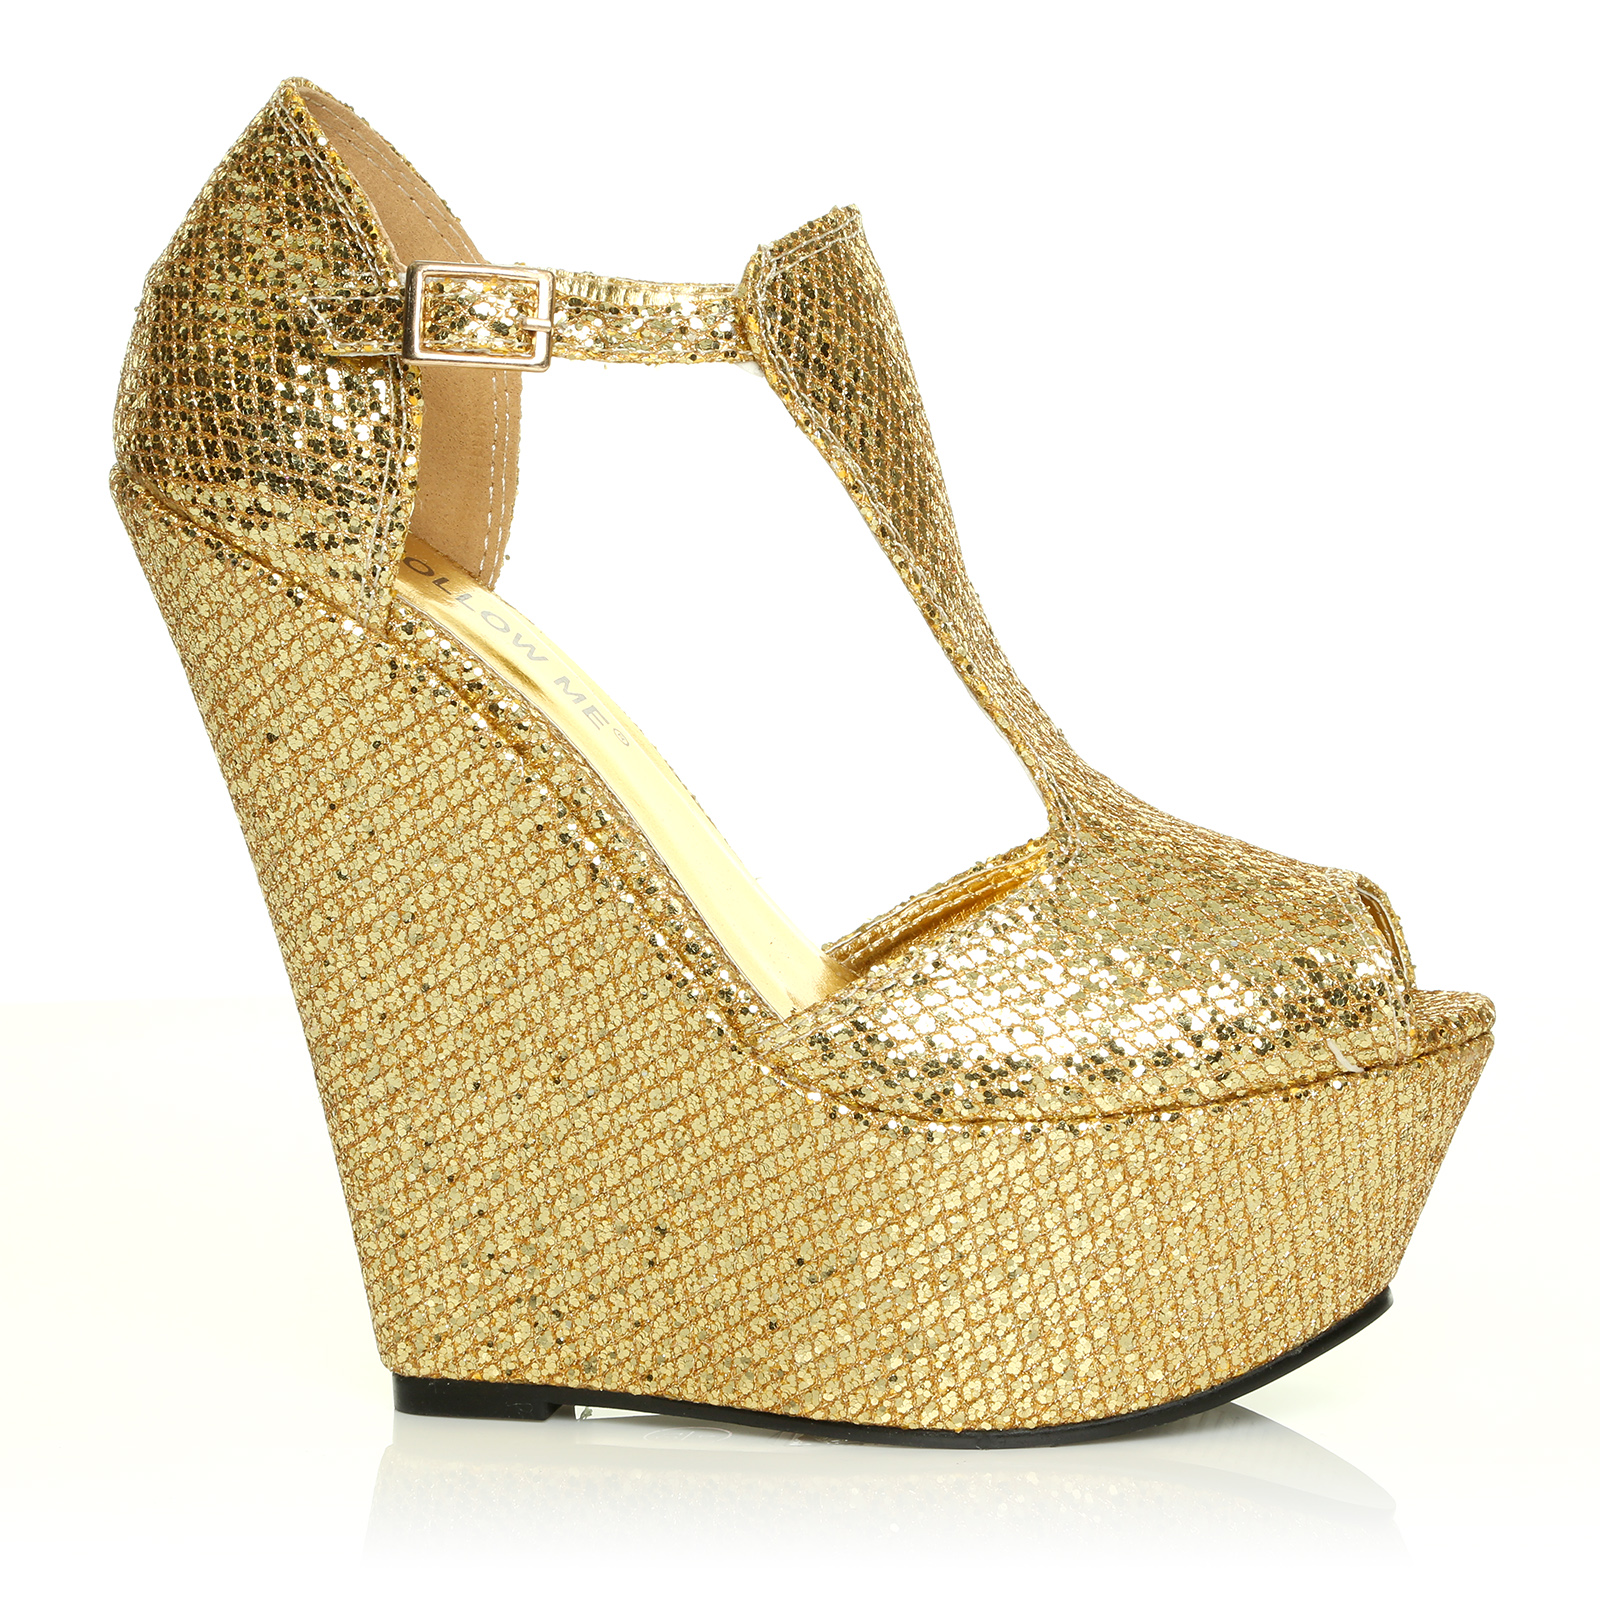 Find the perfect evening shoes for your special event, including wedding wedges and flats, bridesmaid shoes, homecoming shoes, and more. Designer styles at a discount, & free shipping!